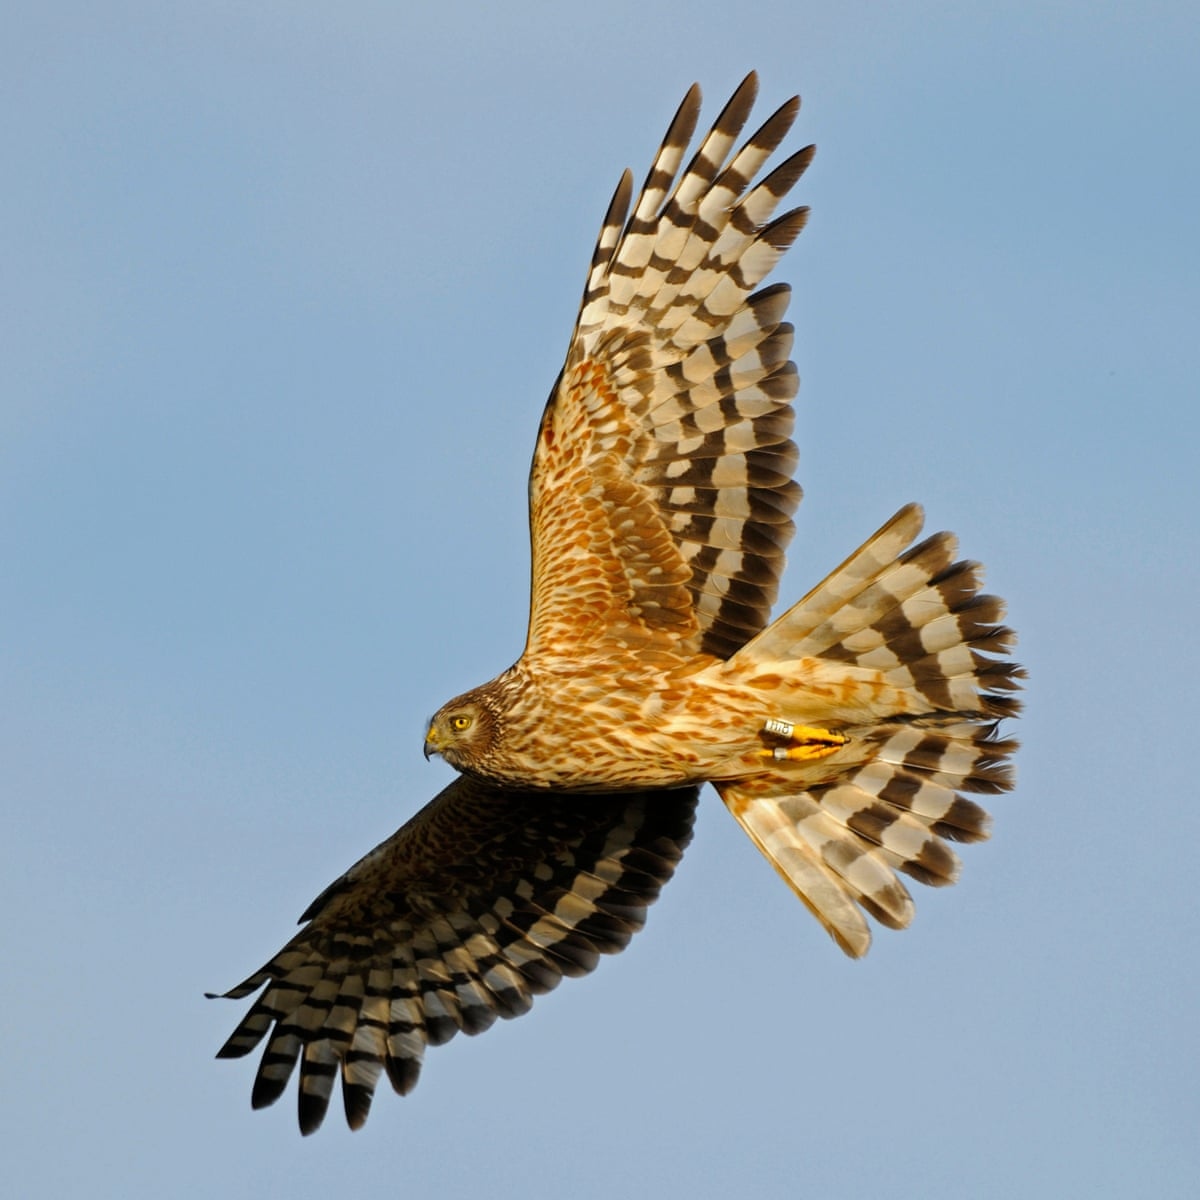 Rspb Flooded With Reports Of Birds Of Prey Being Killed Rspb The Guardian